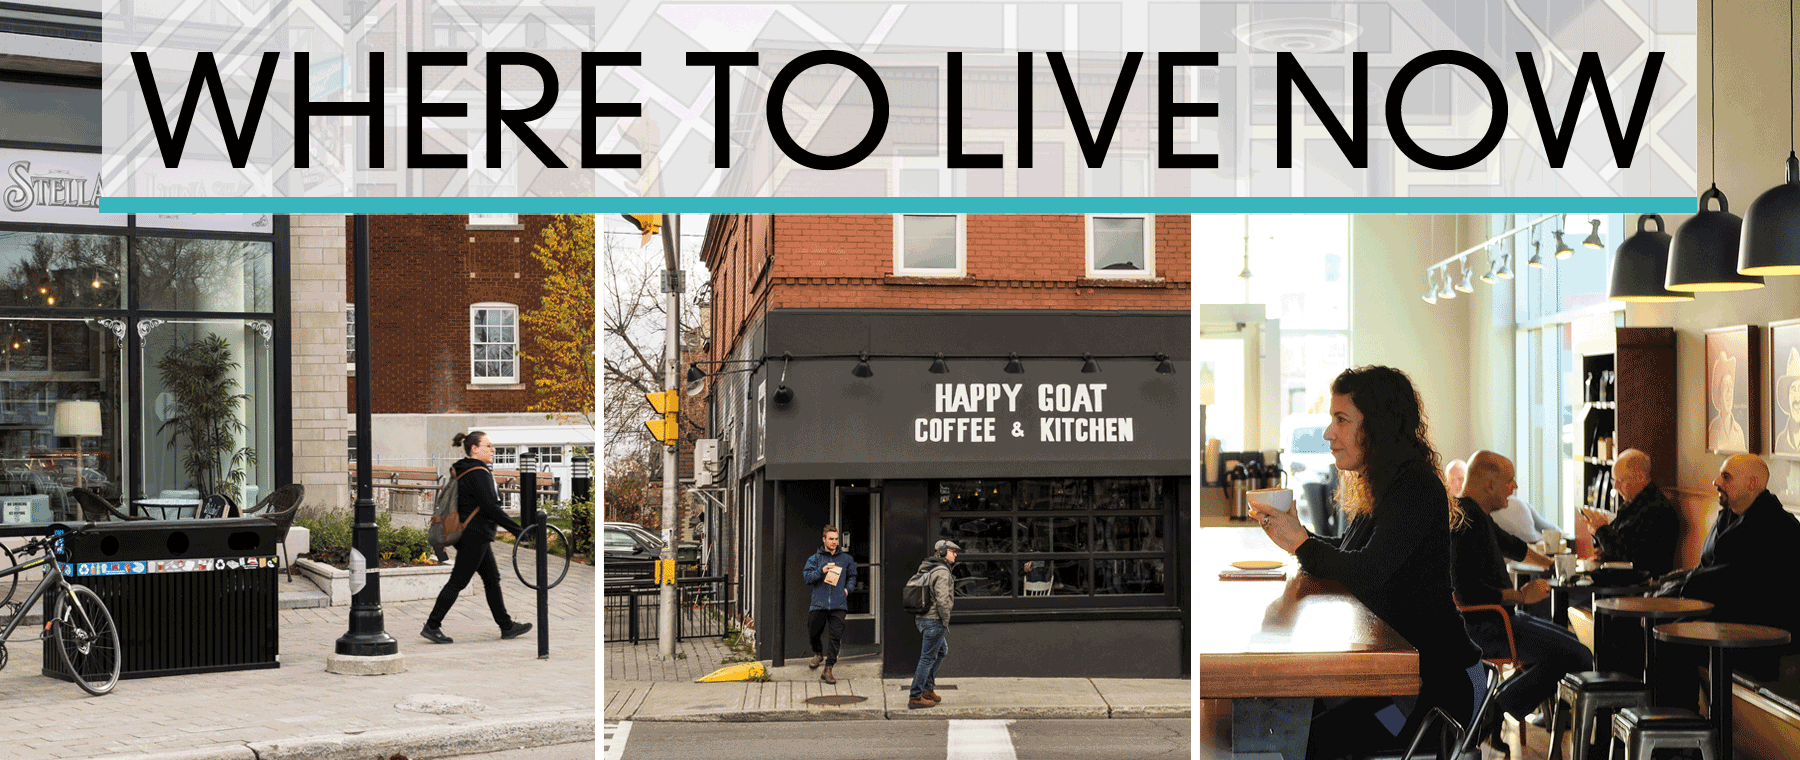 Where to Live Now: A data-driven look at Ottawa neighbourhoods